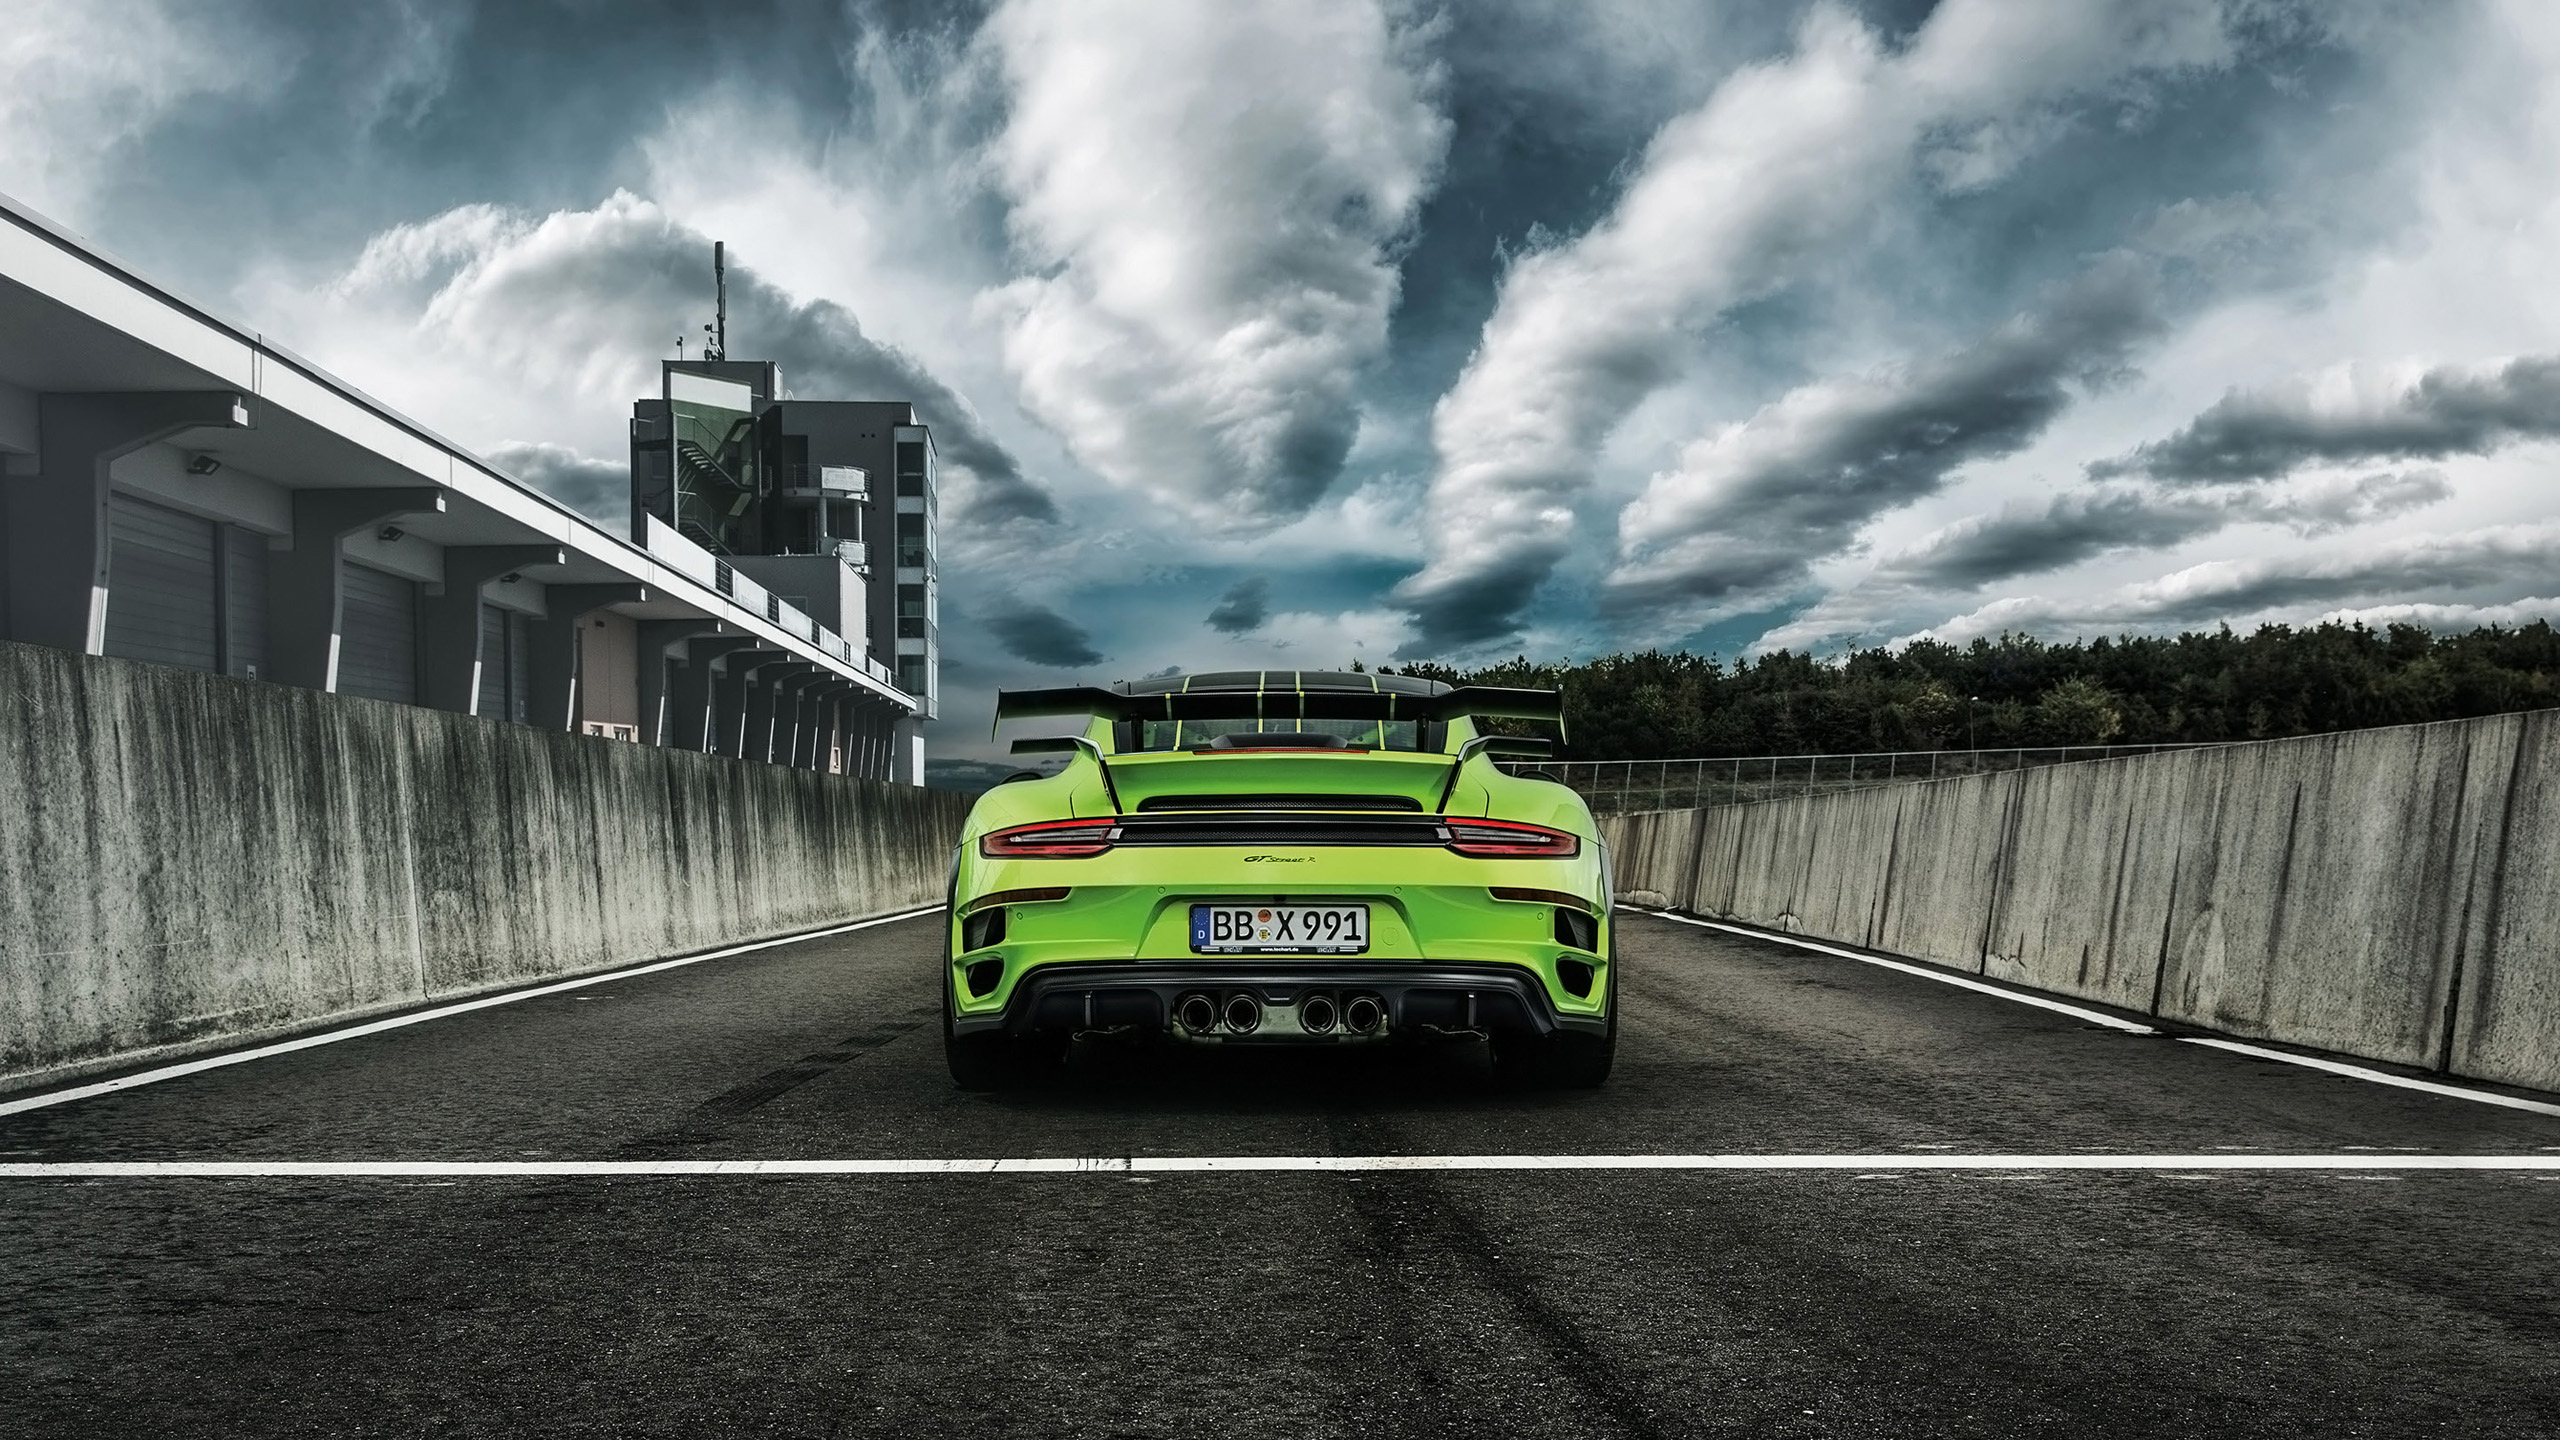 2016 techart porsche 911 turbo gtstreet r 4 - Porsche 911 Wallpaper Widescreen